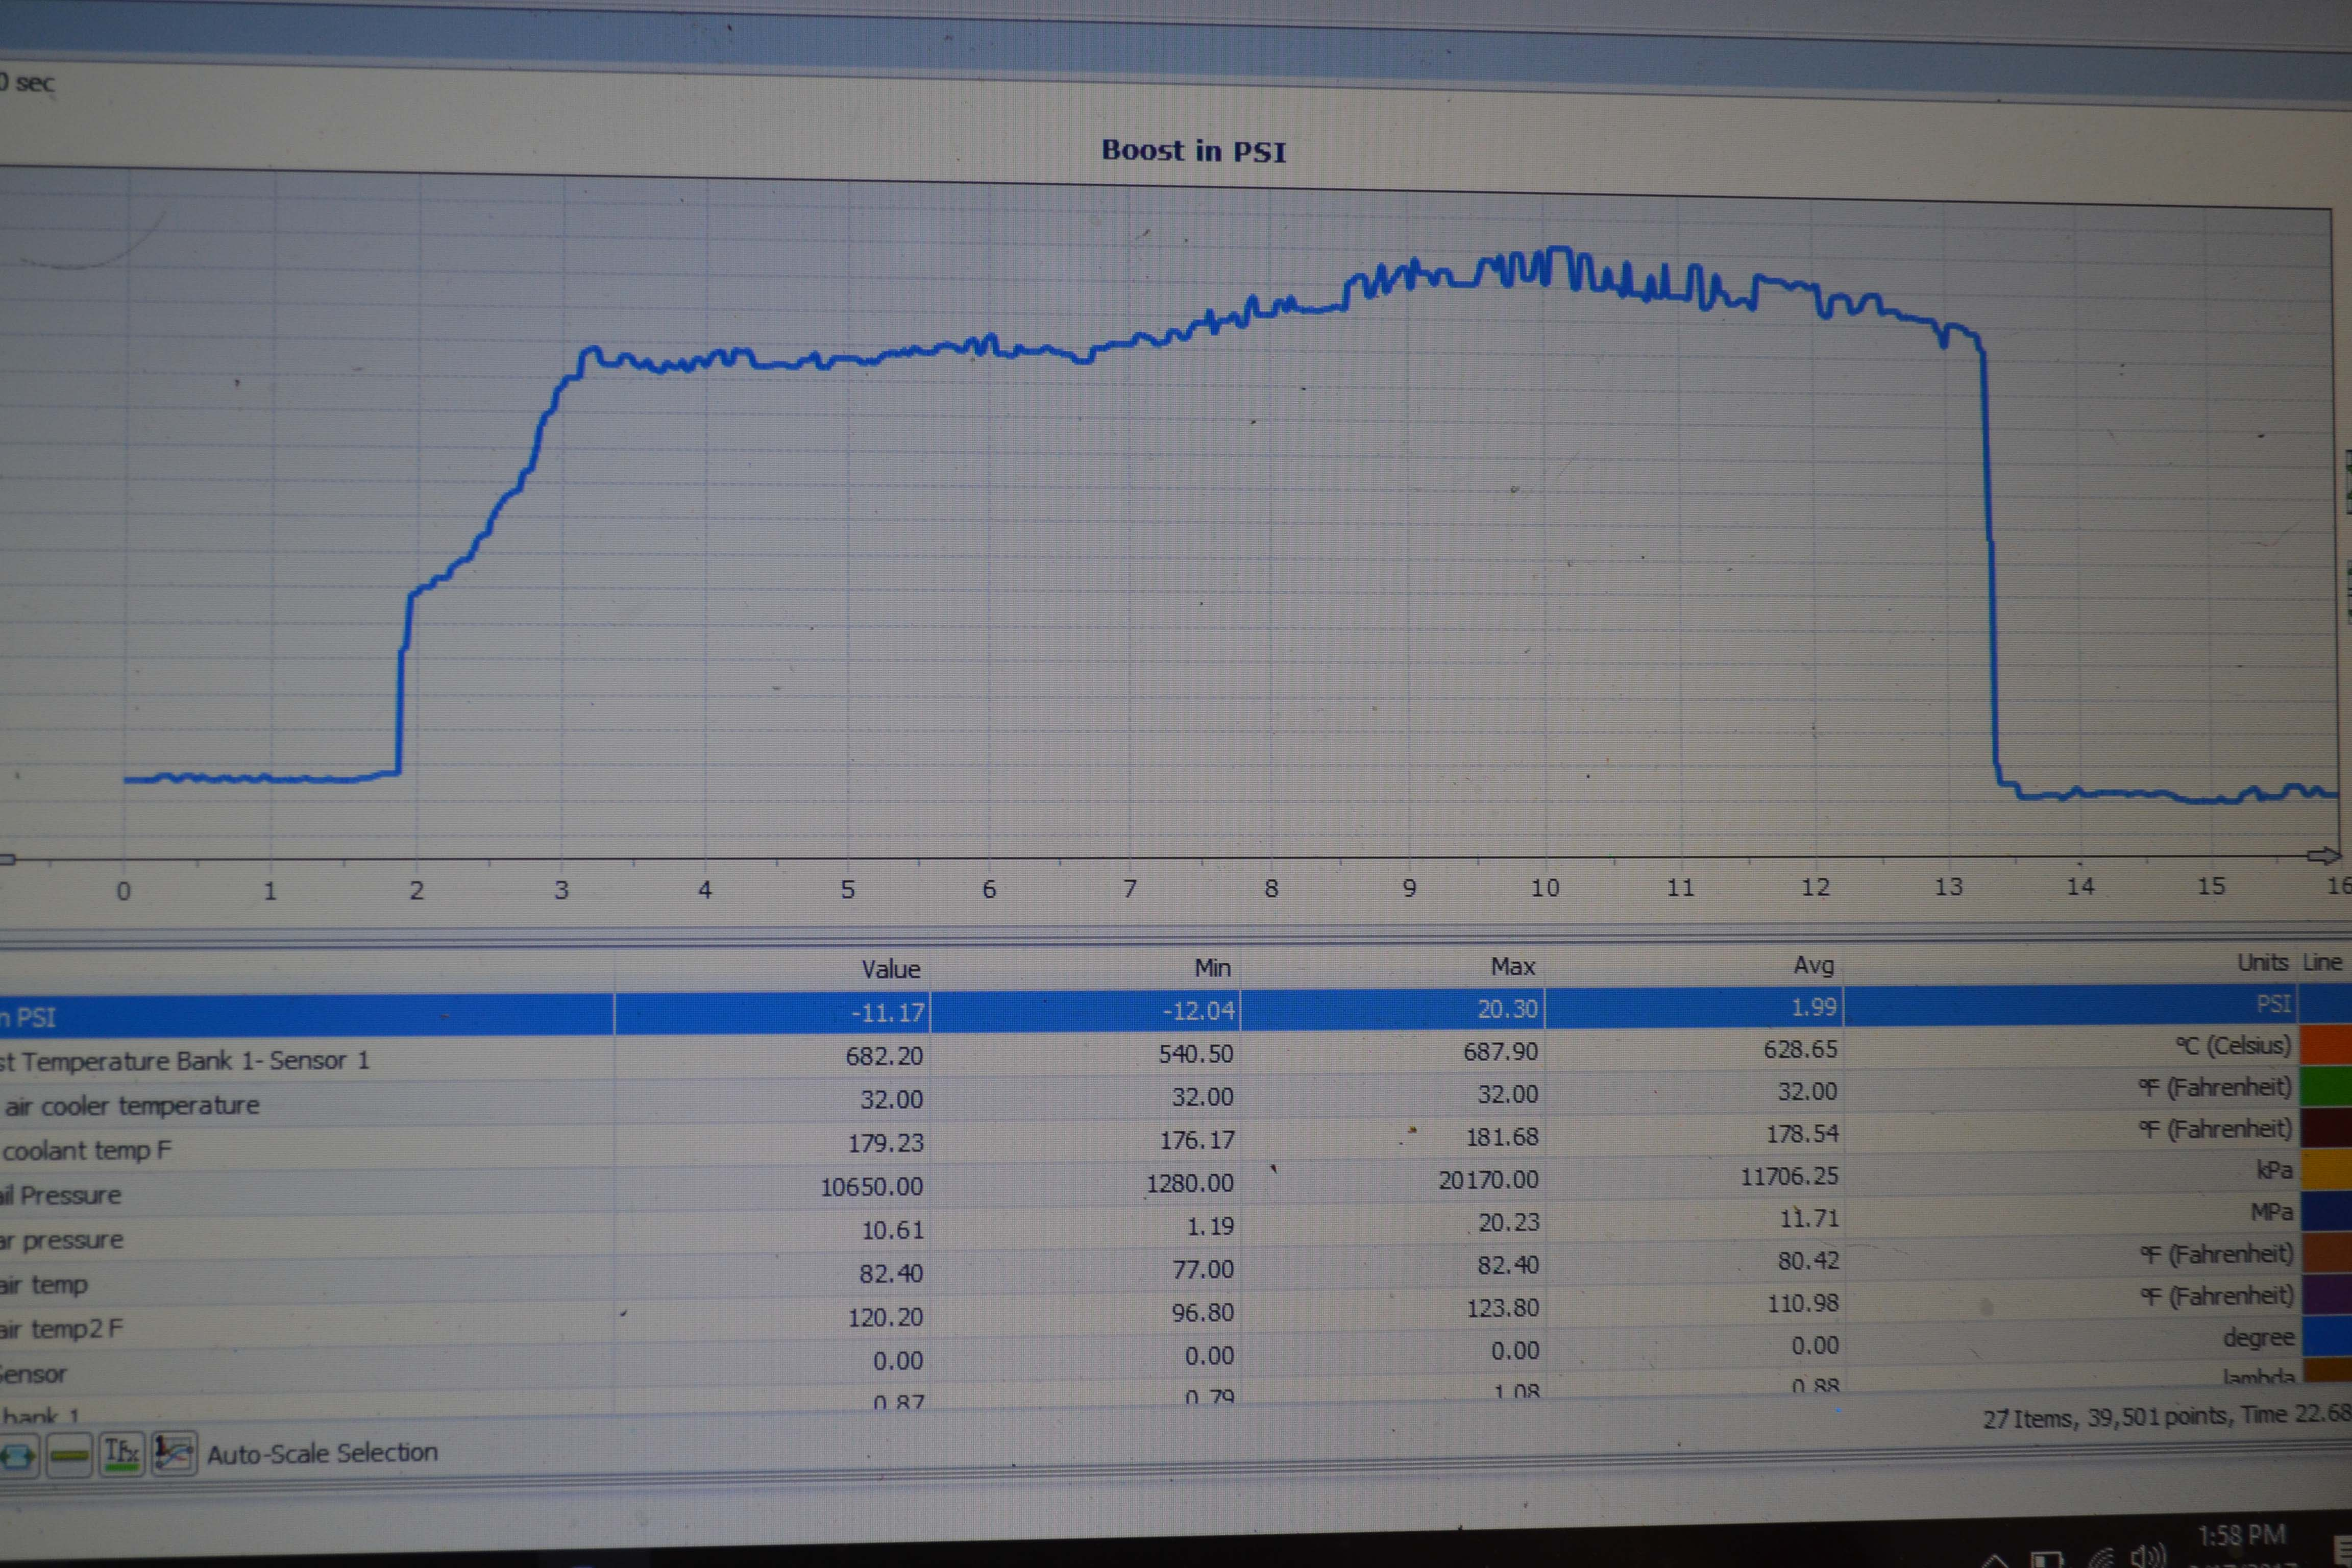 006 Ecoboost Inside Tuning Stock Boost Third Gear